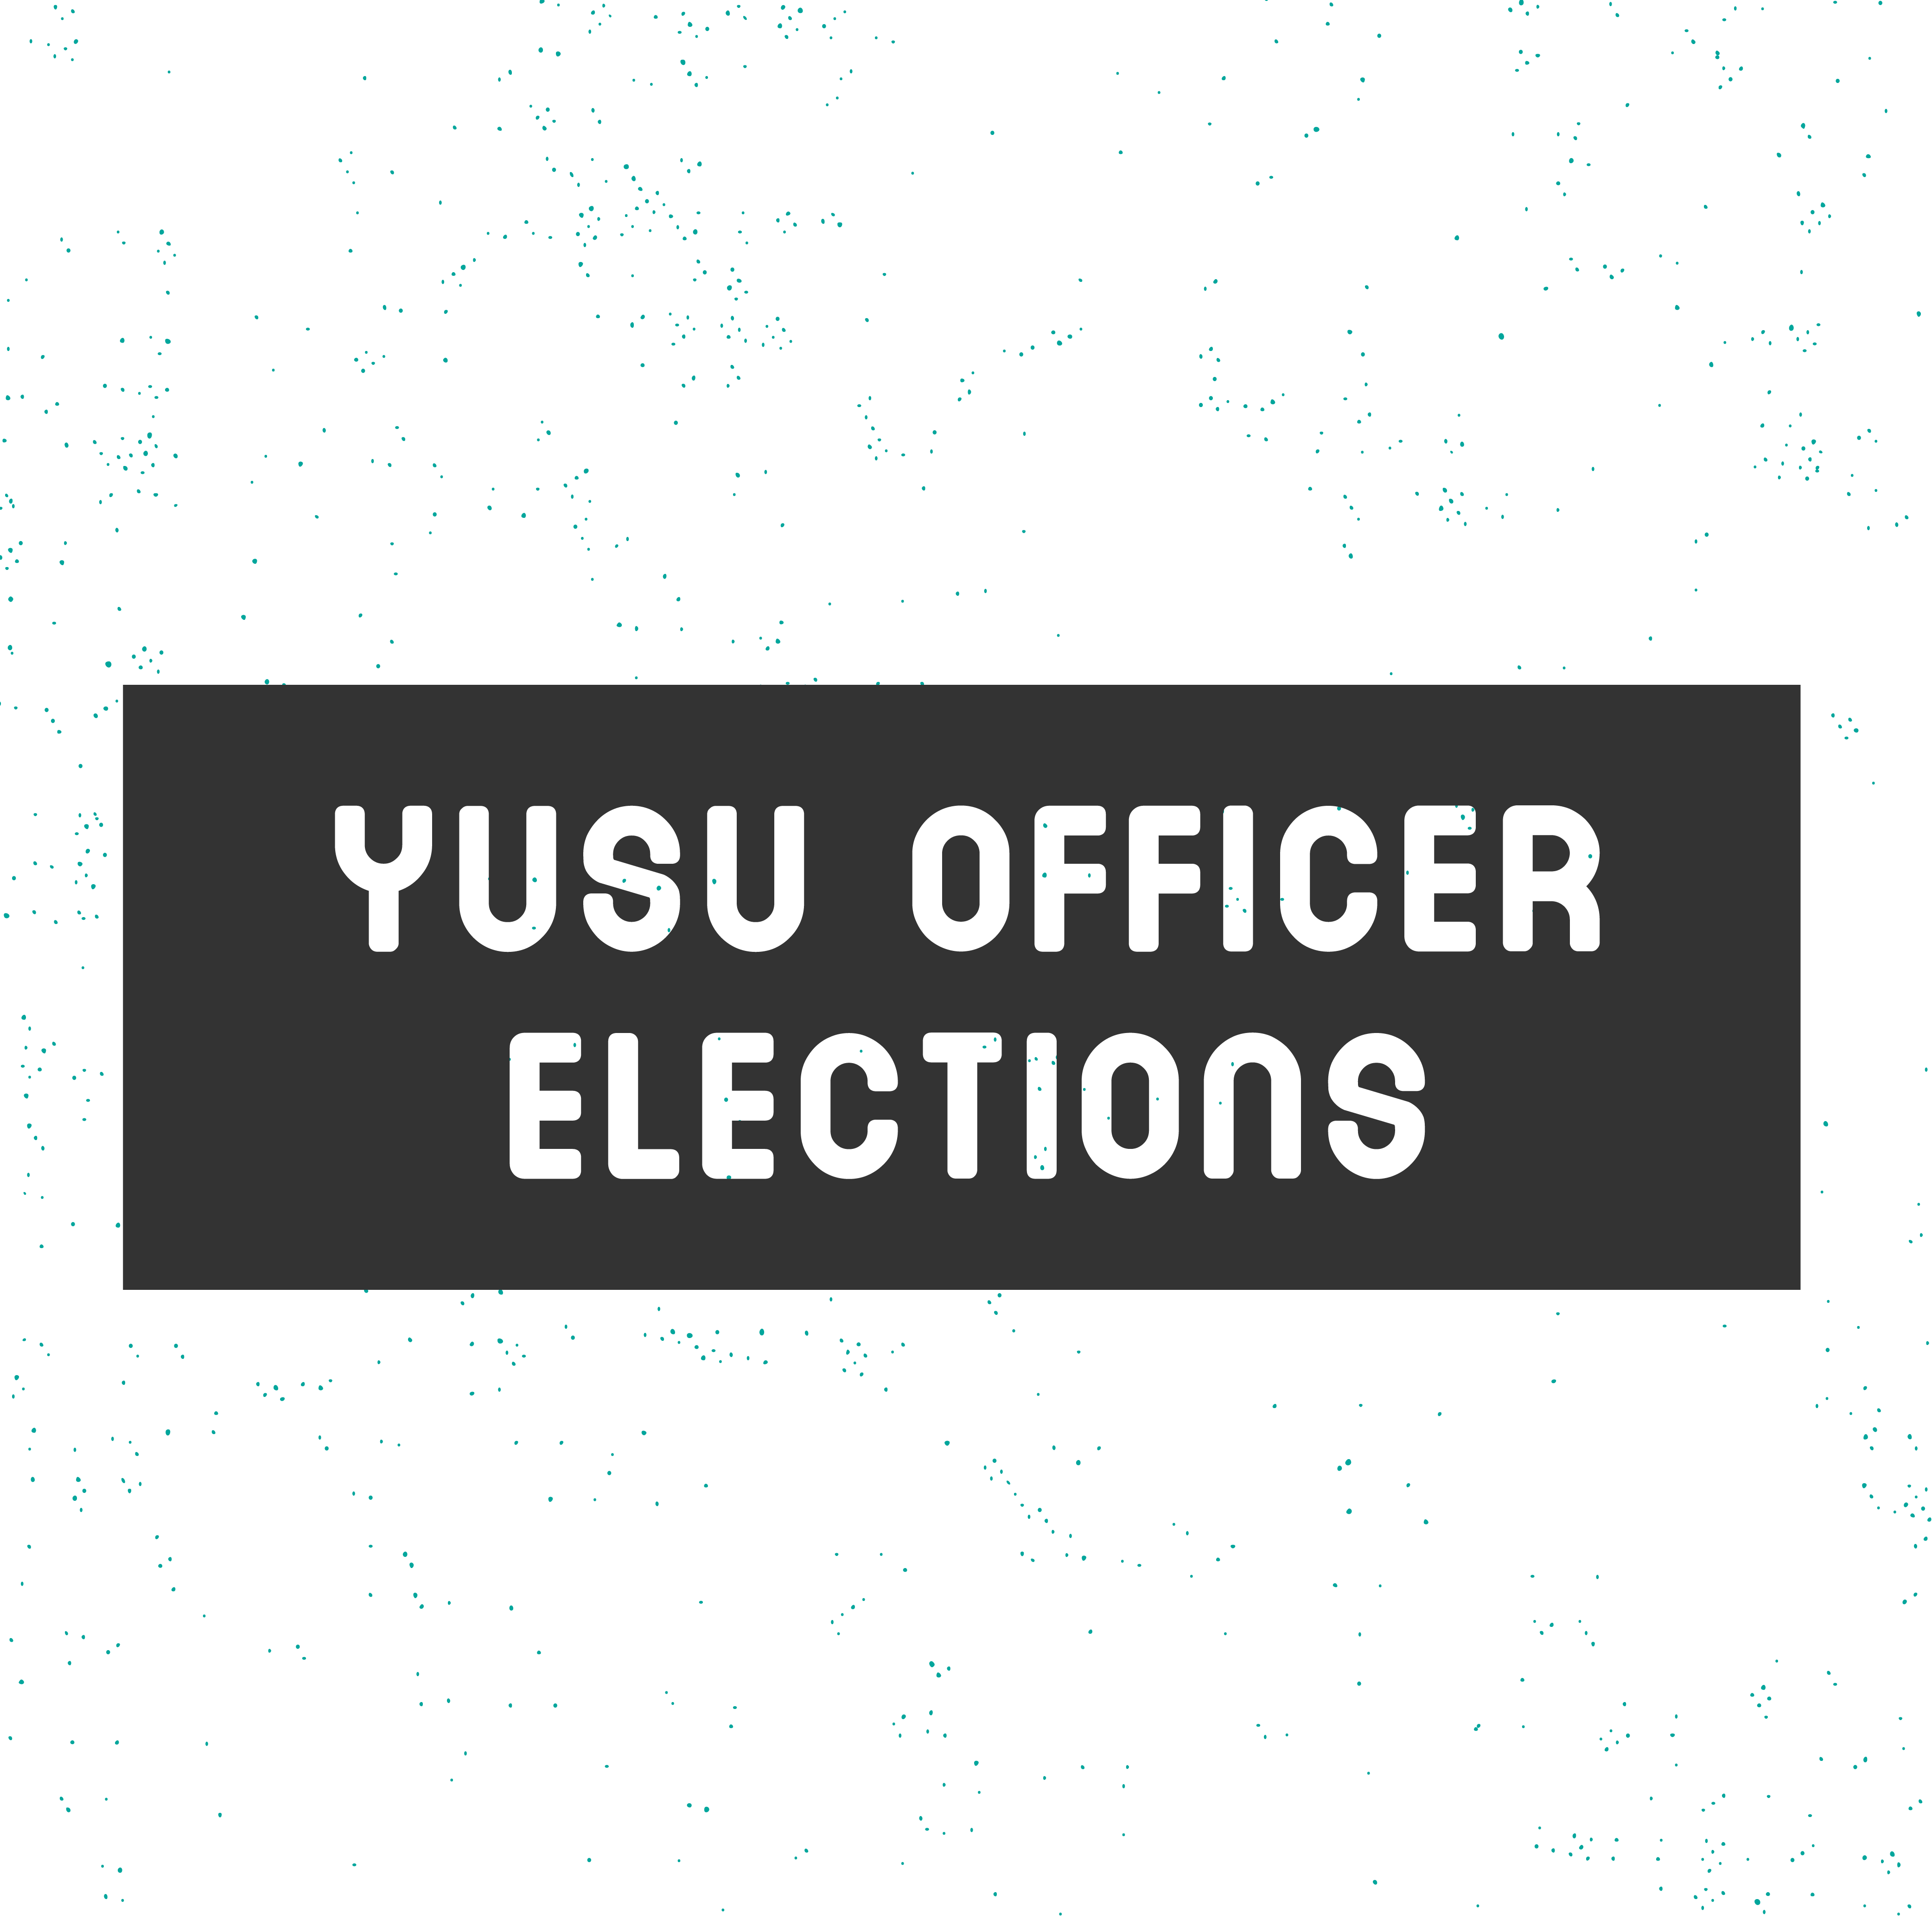 YUSU Officer Elections